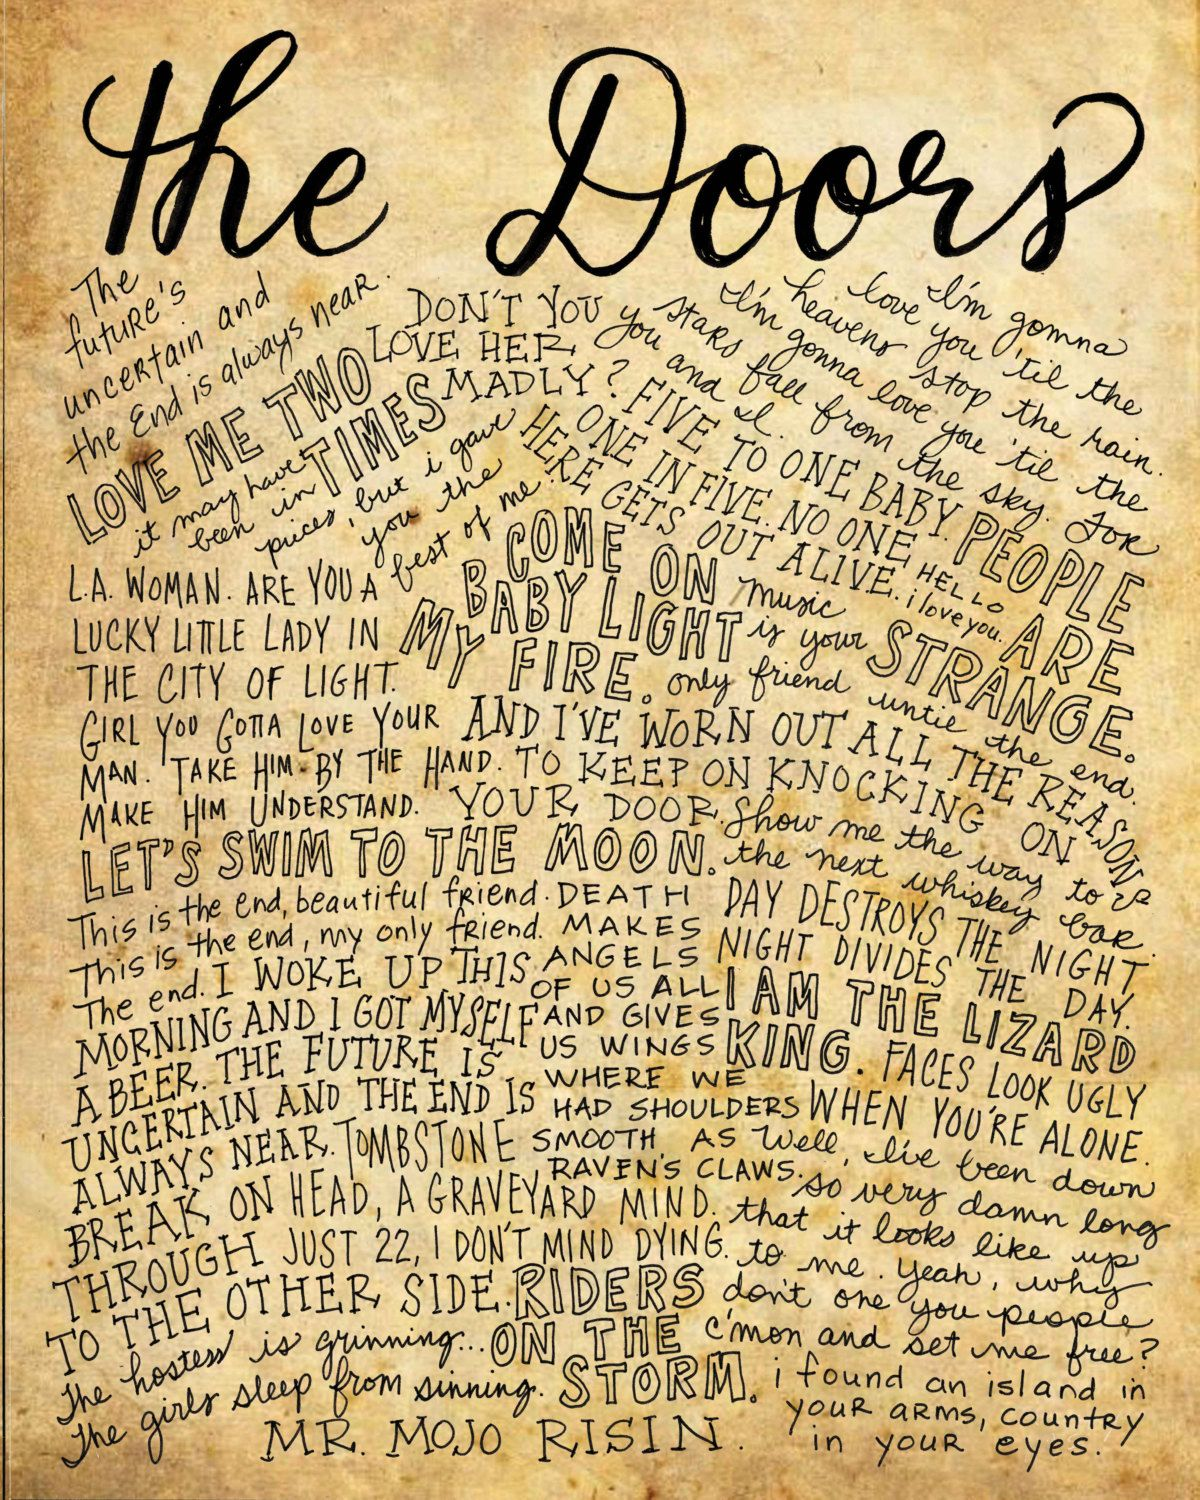 The Doors Lyrics And Quotes 8x10 Handdrawn And Handlettered Etsy Classic Rock Lyrics Lyrics Quotes